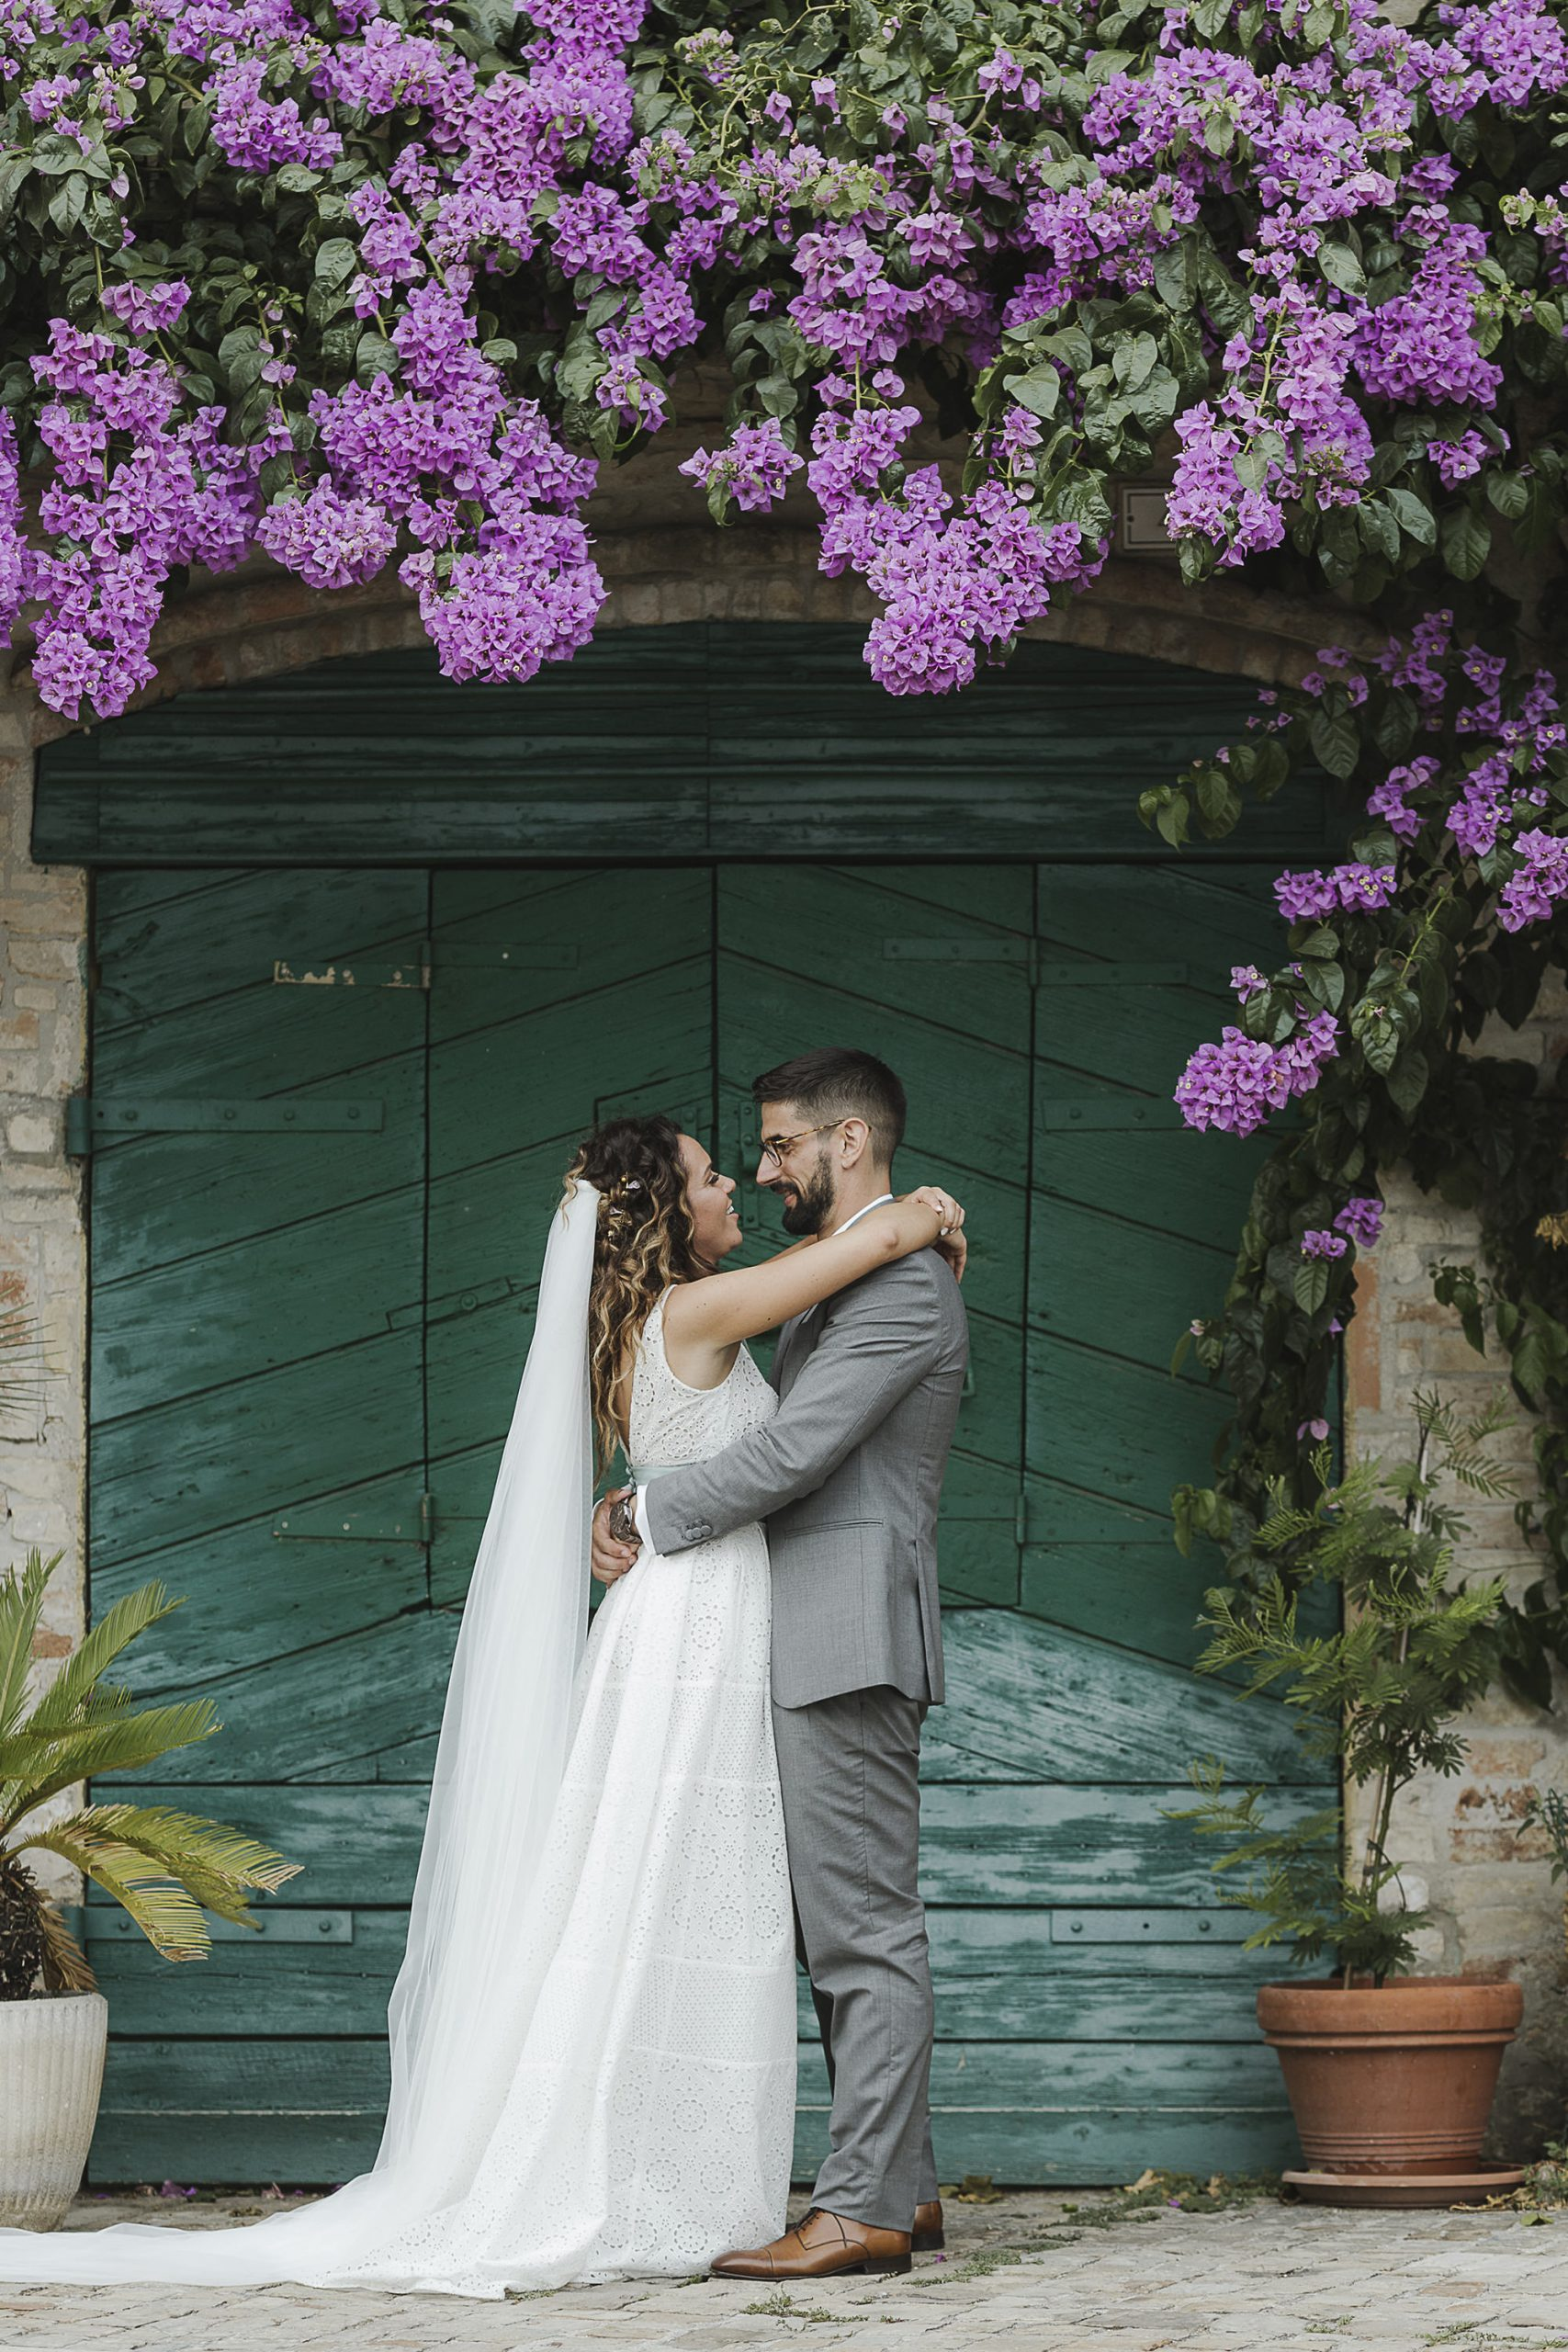 Emanuele and Chiara's Stunning White and Sage Green Vineyard Wedding in Italy